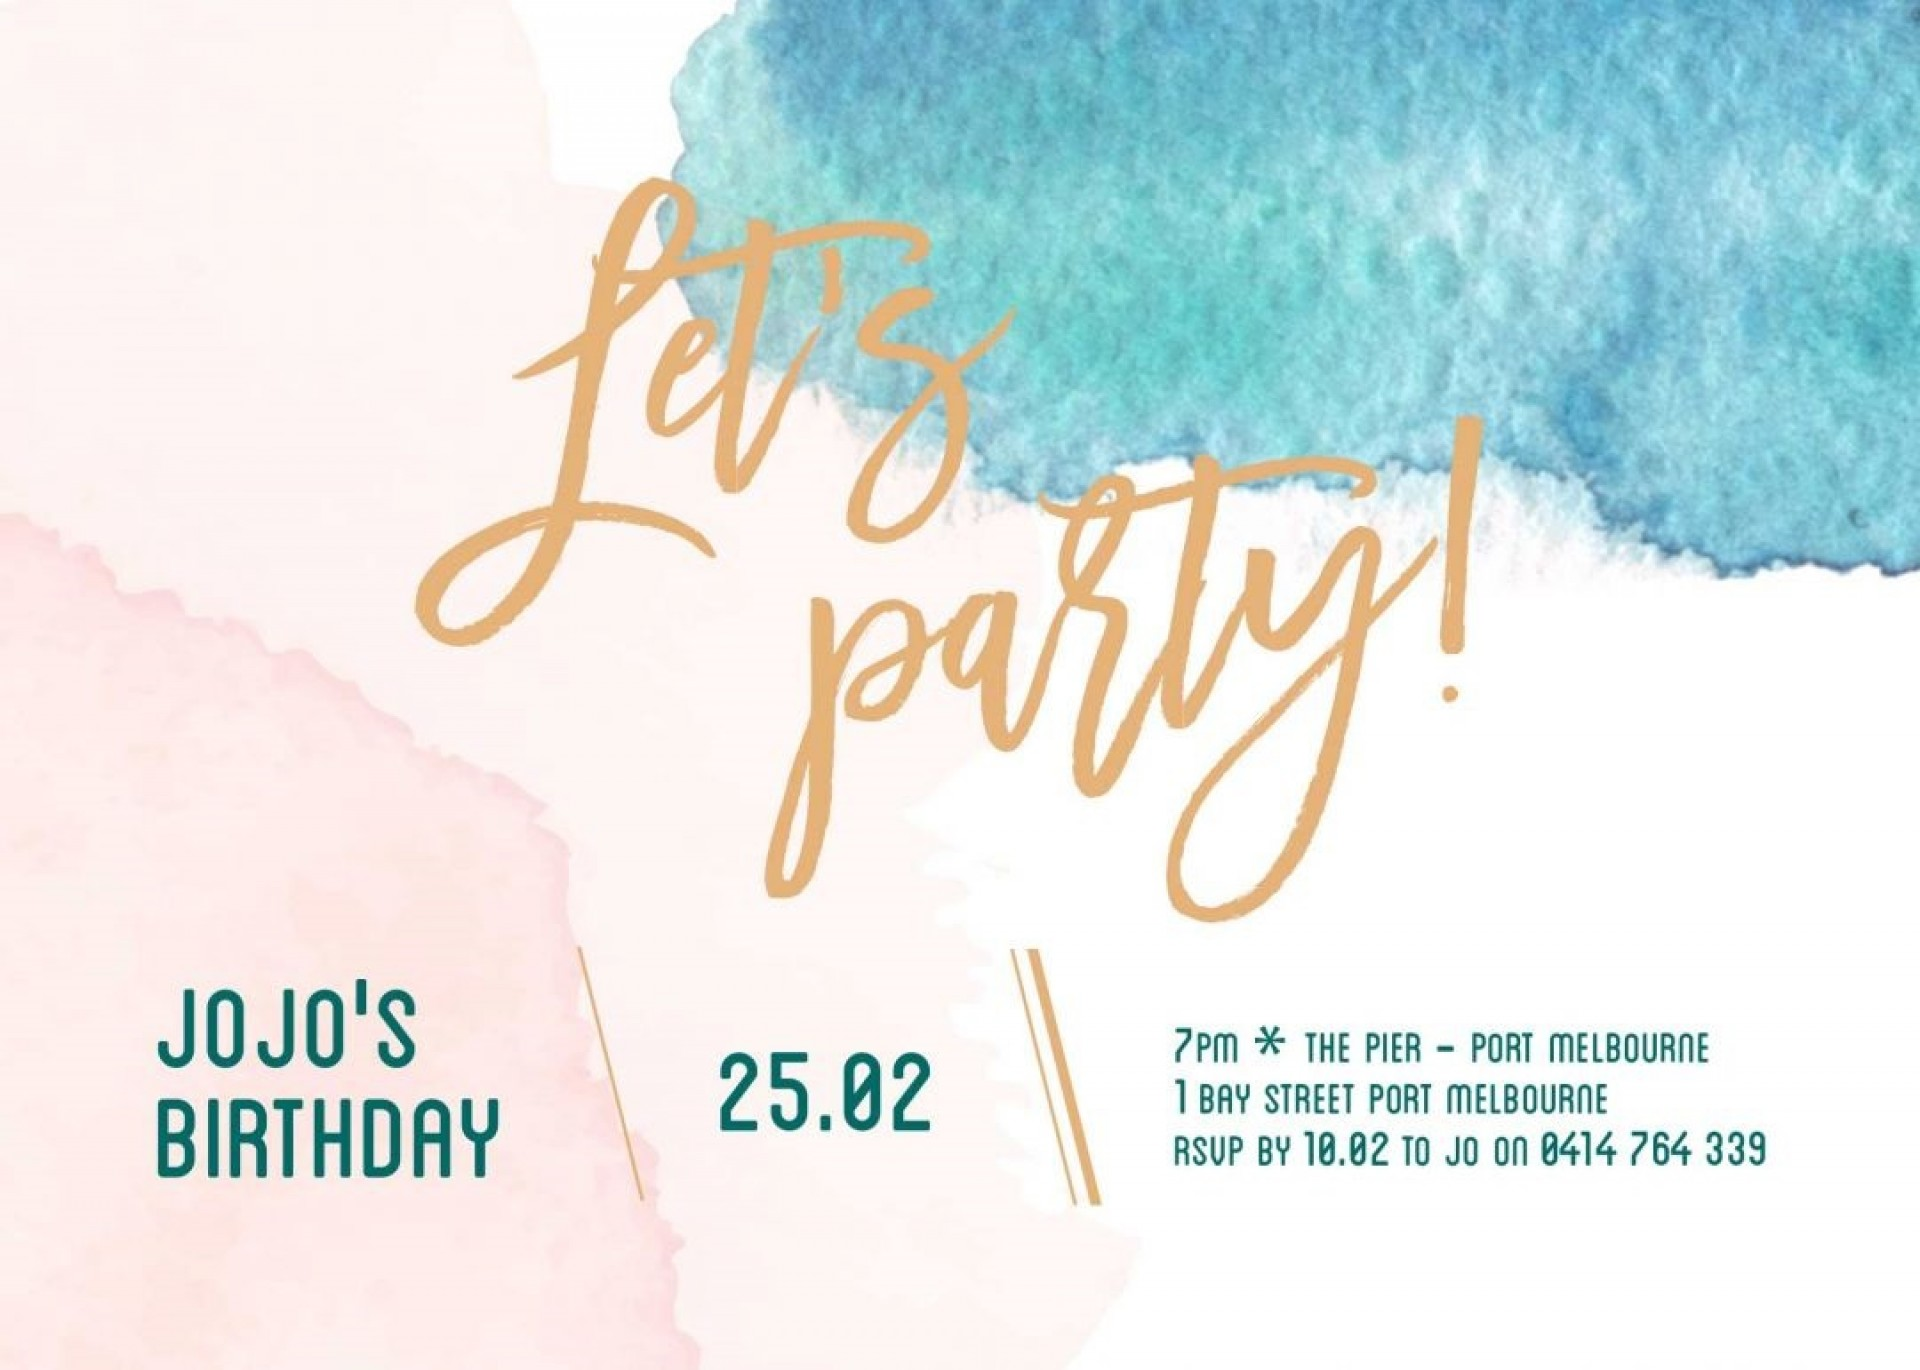 009 Fantastic Birthday Party Invitation Template Design  Templates Google Doc 80th Free Download Online1920